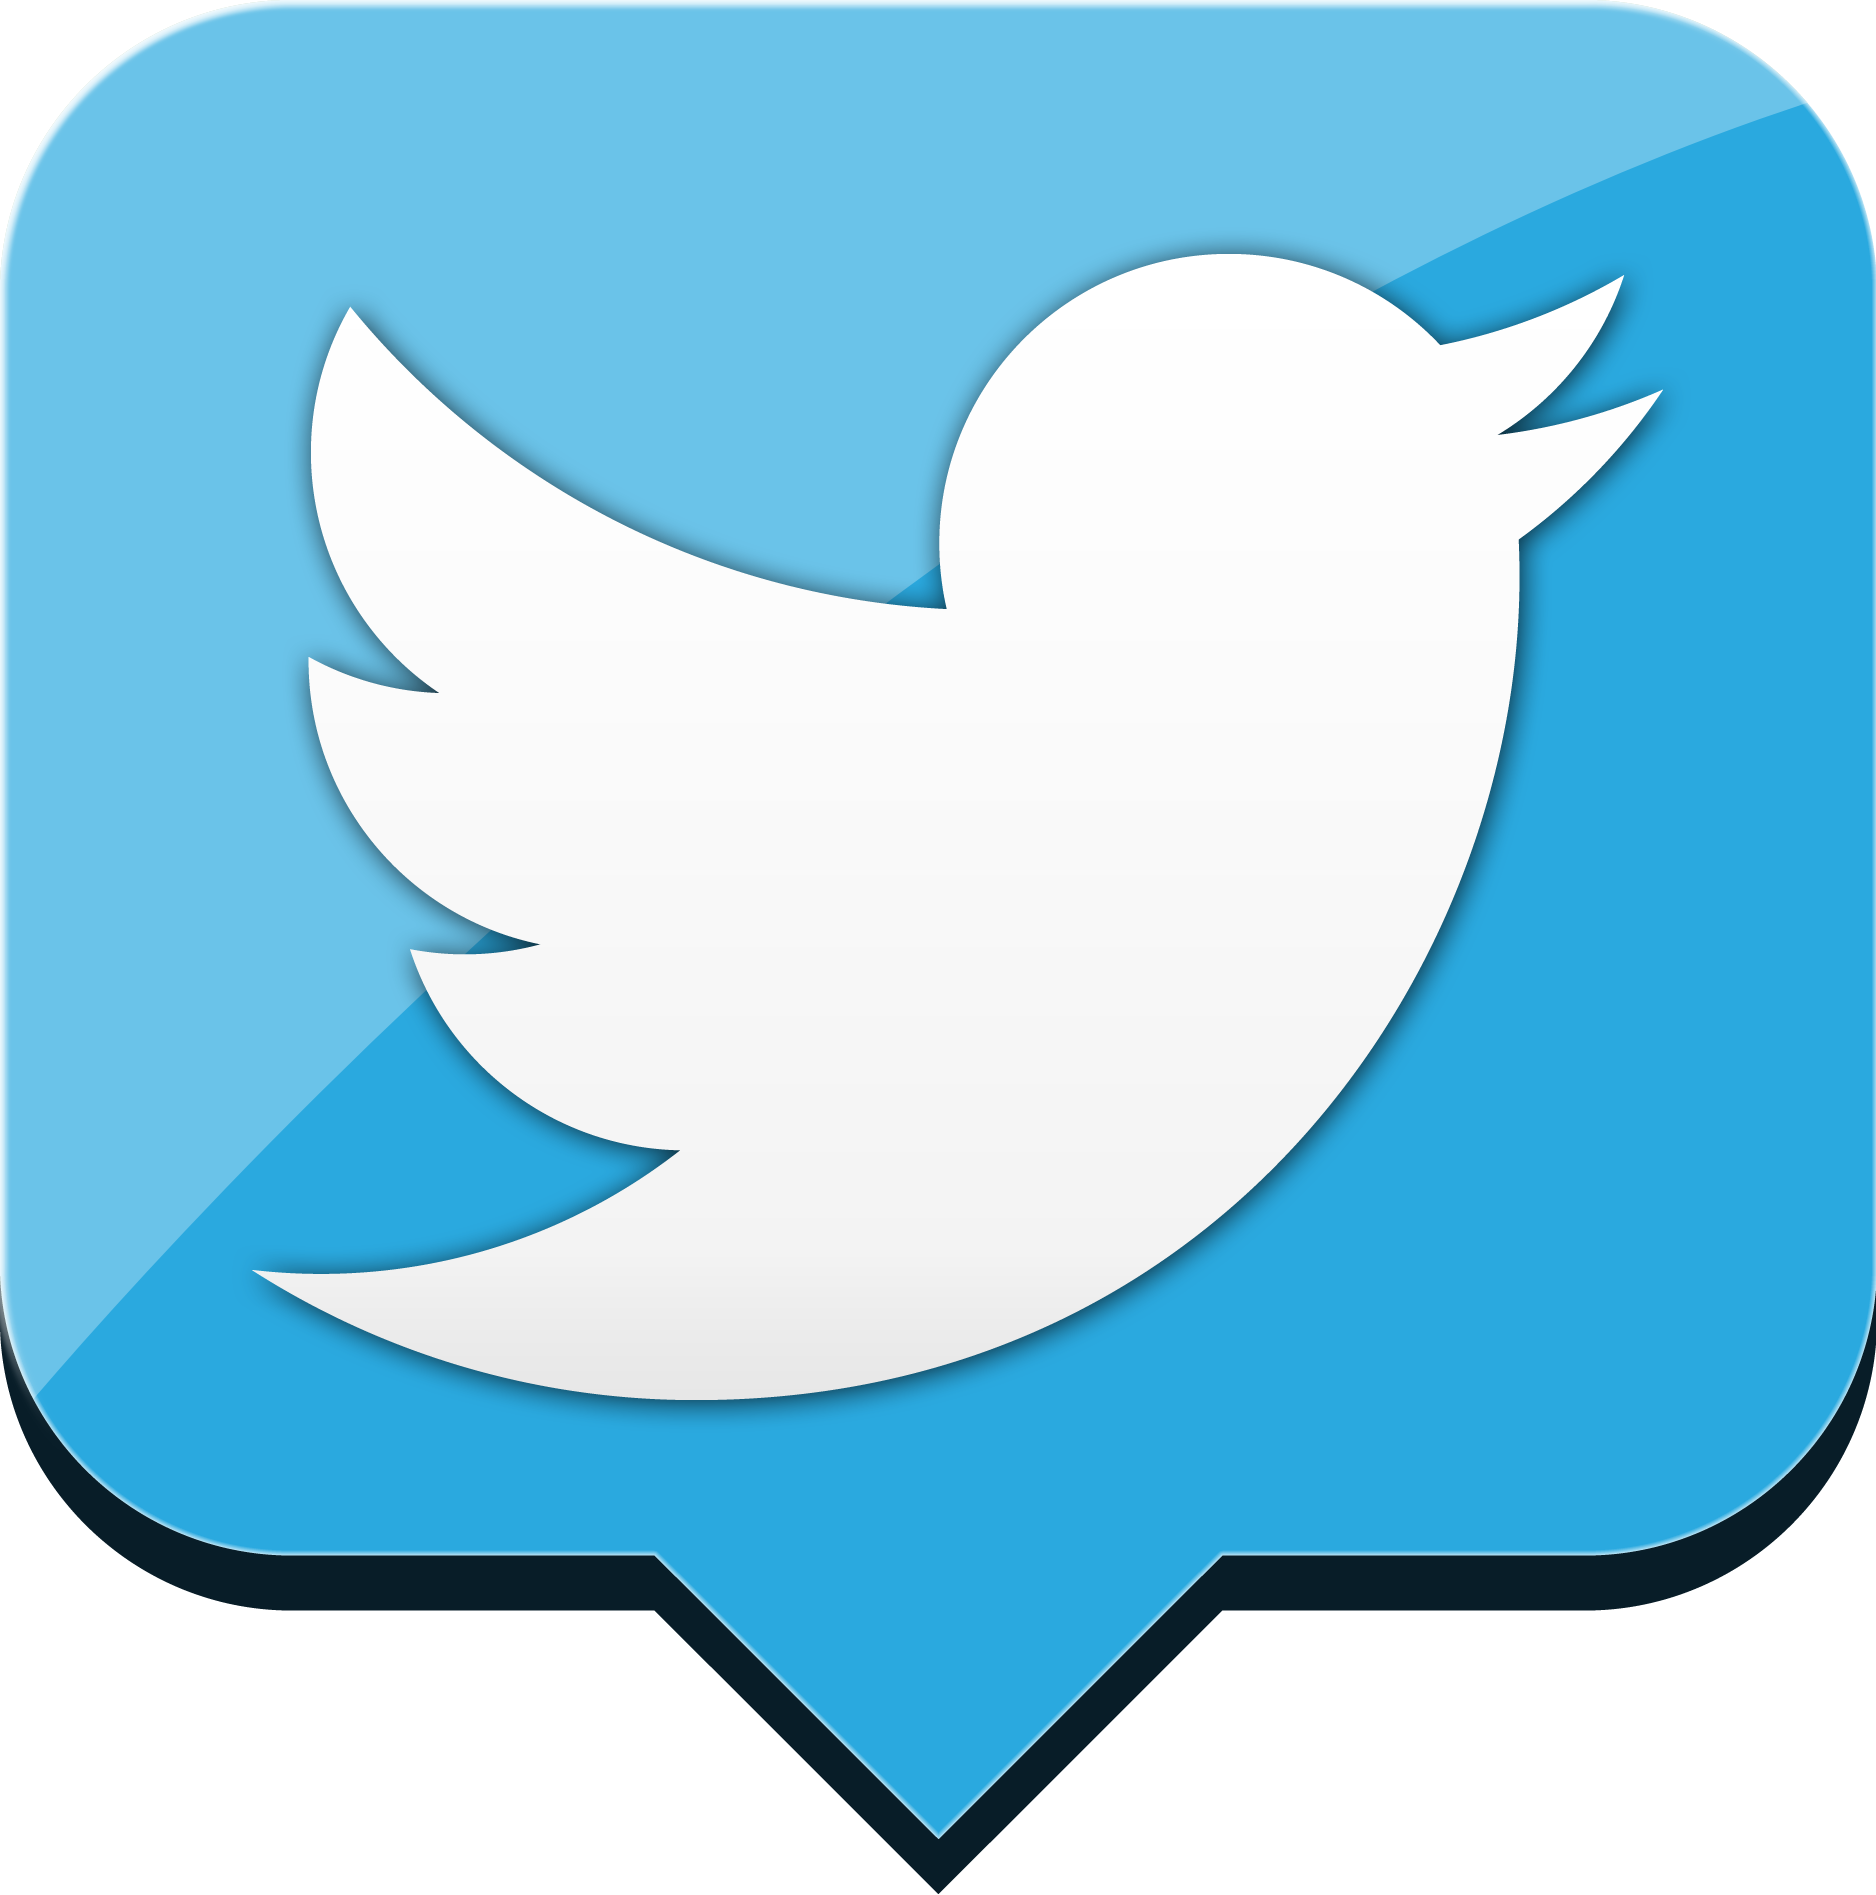 Twitter Free PNG Image